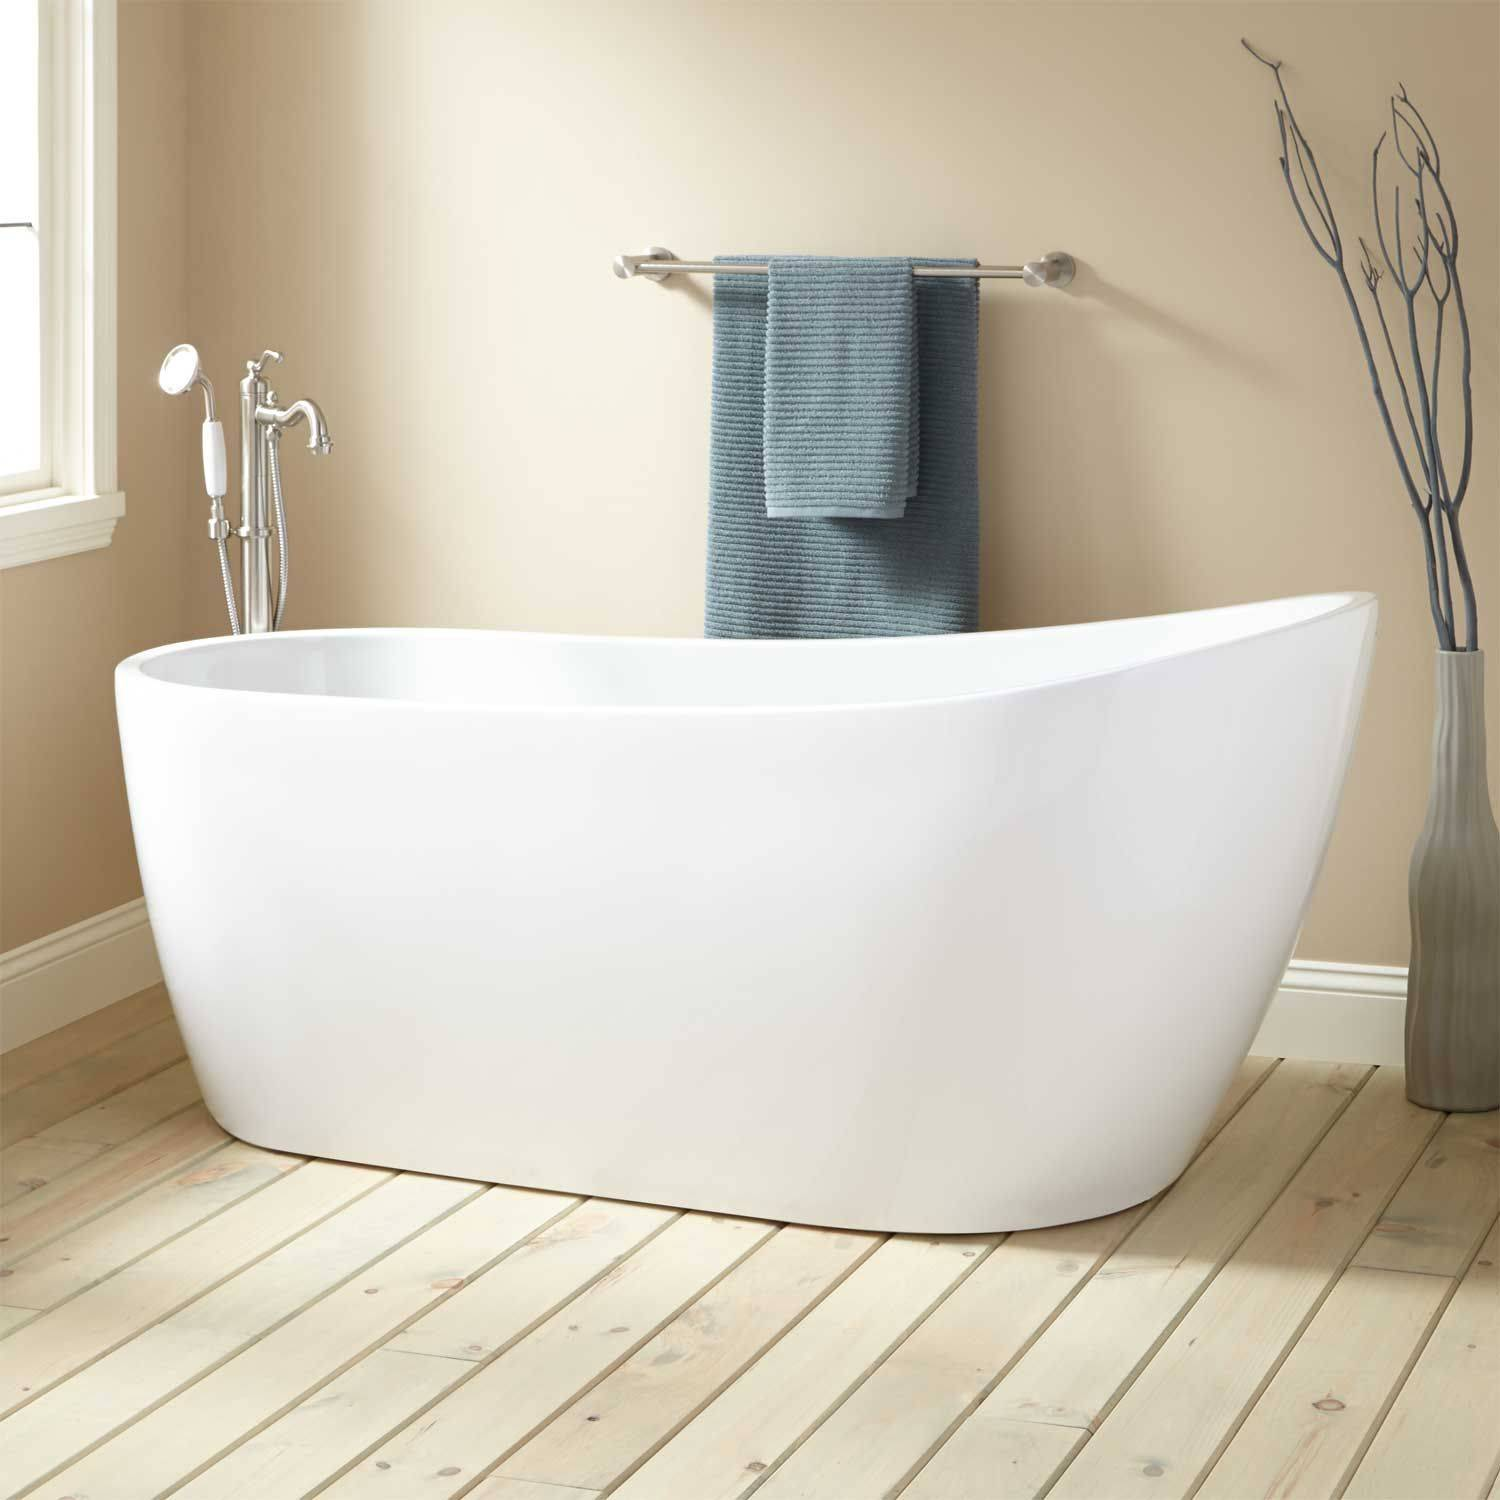 Modern Slipper Tub Beautiful Boyce Acrylic Freestanding Tub Bathtubs Bathroom